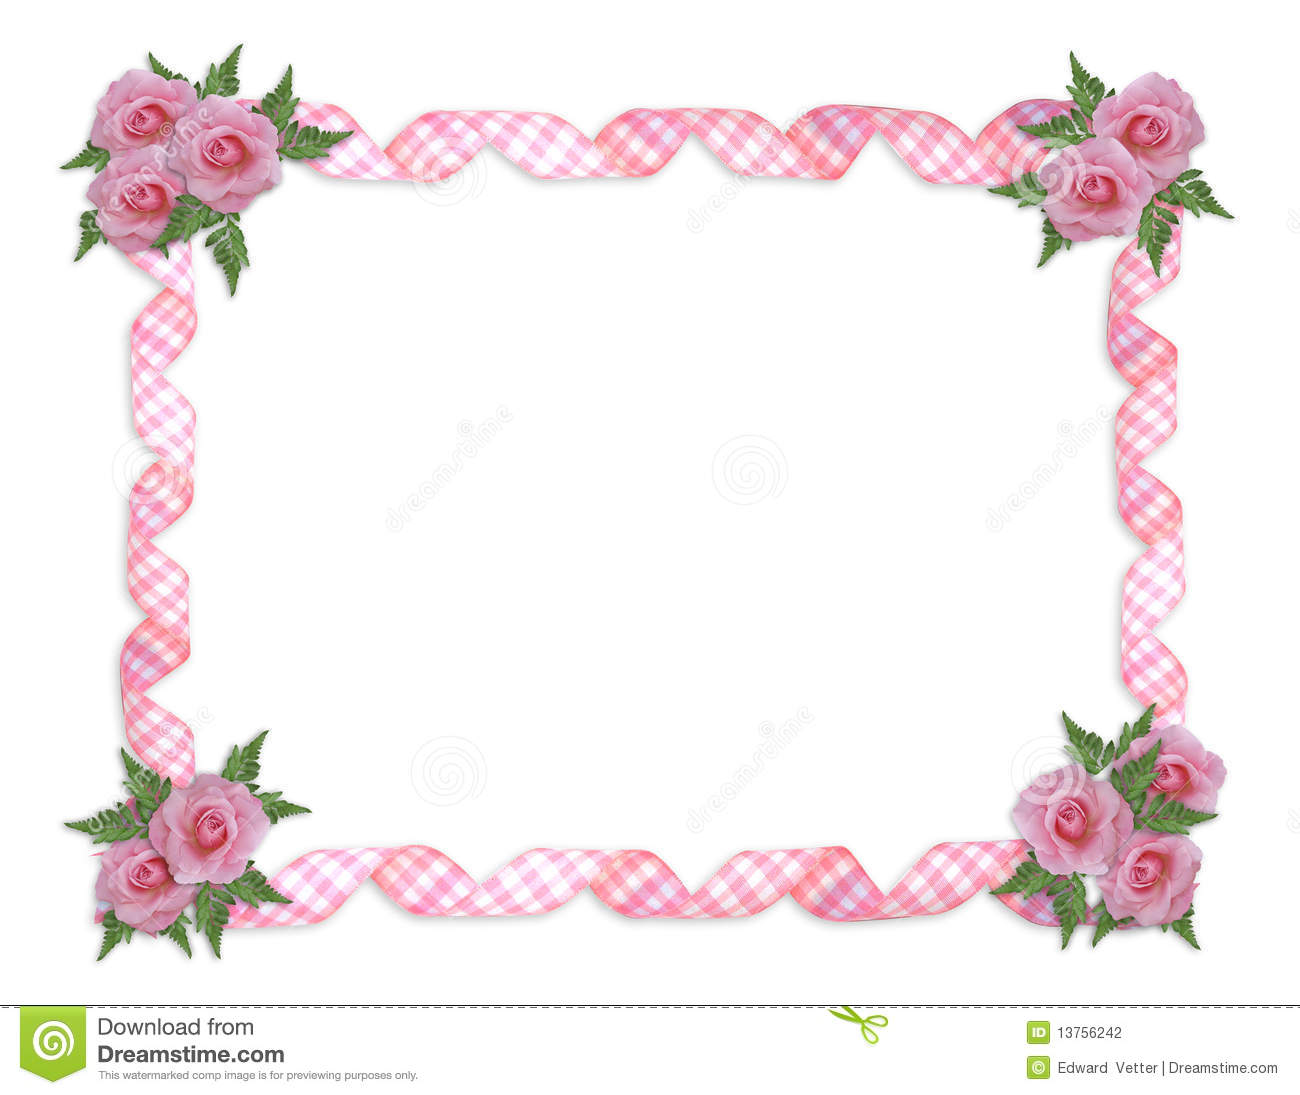 Cute Bordered Pastel Flower Wallpaper Pink Roses Border Stock Illustration Illustration Of